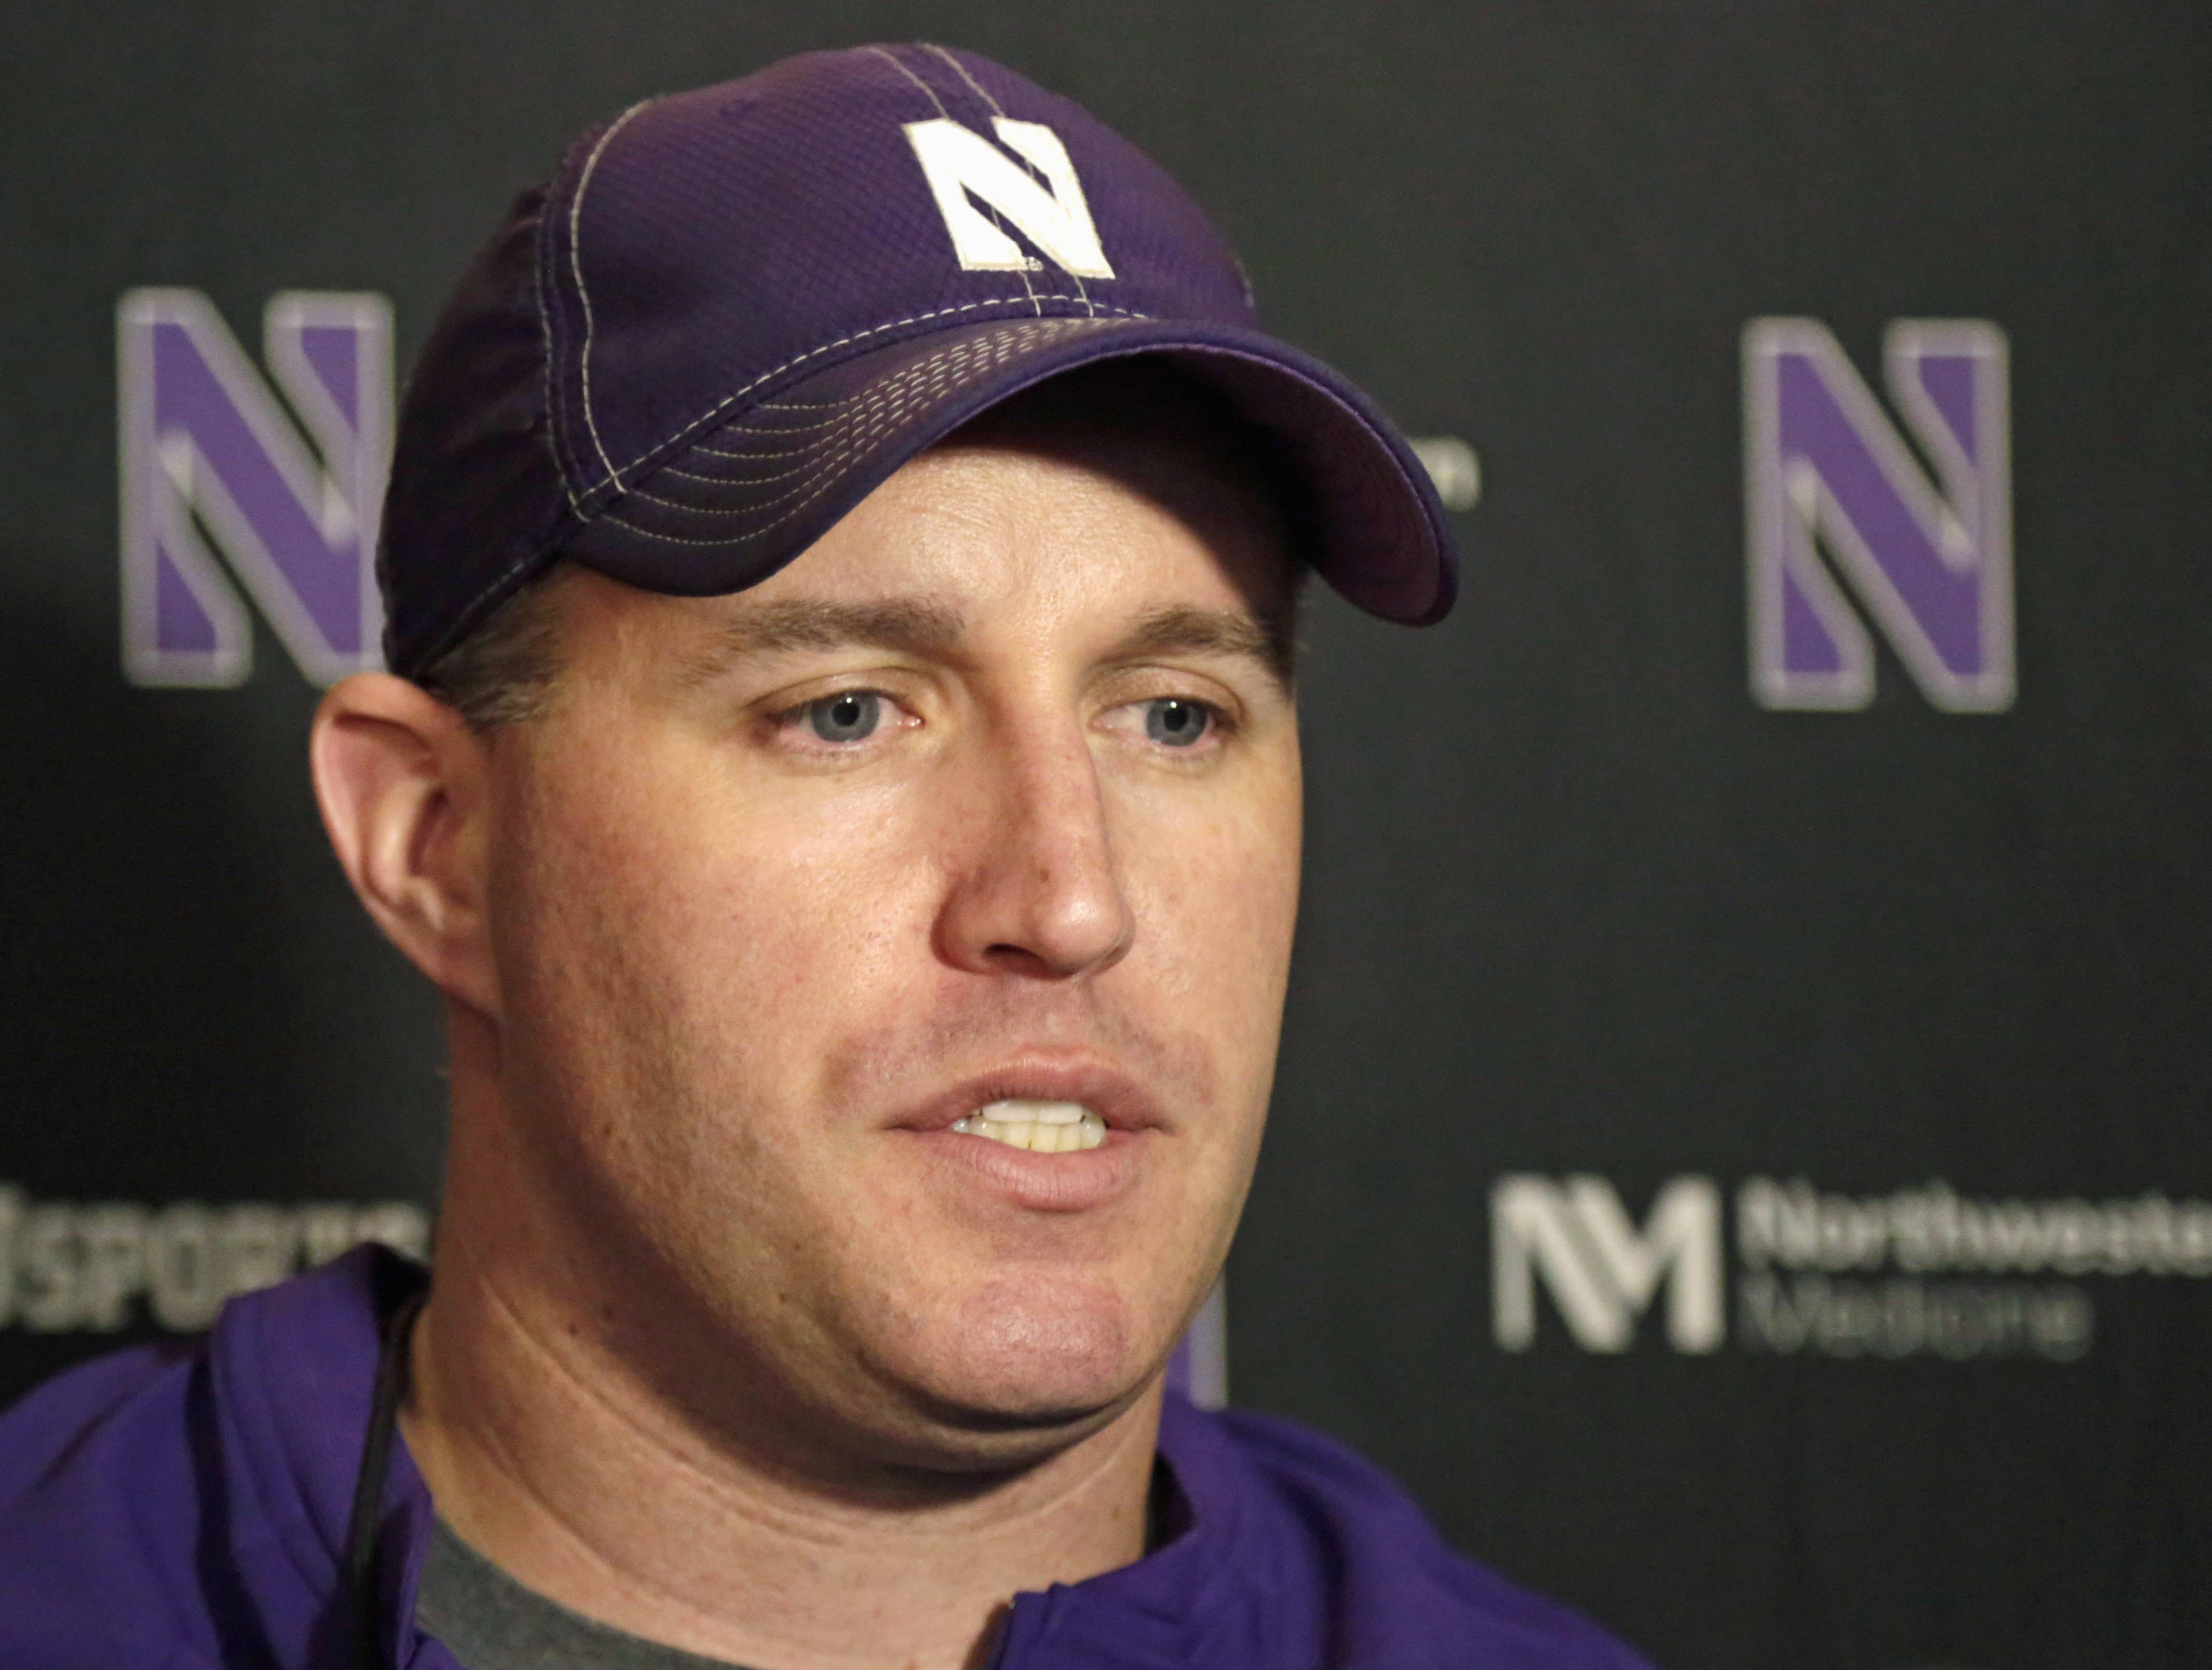 Northwestern and head coach Pat Fitzgerald finished 5-7 last season and hope to get off to a good start at home Saturday against California.